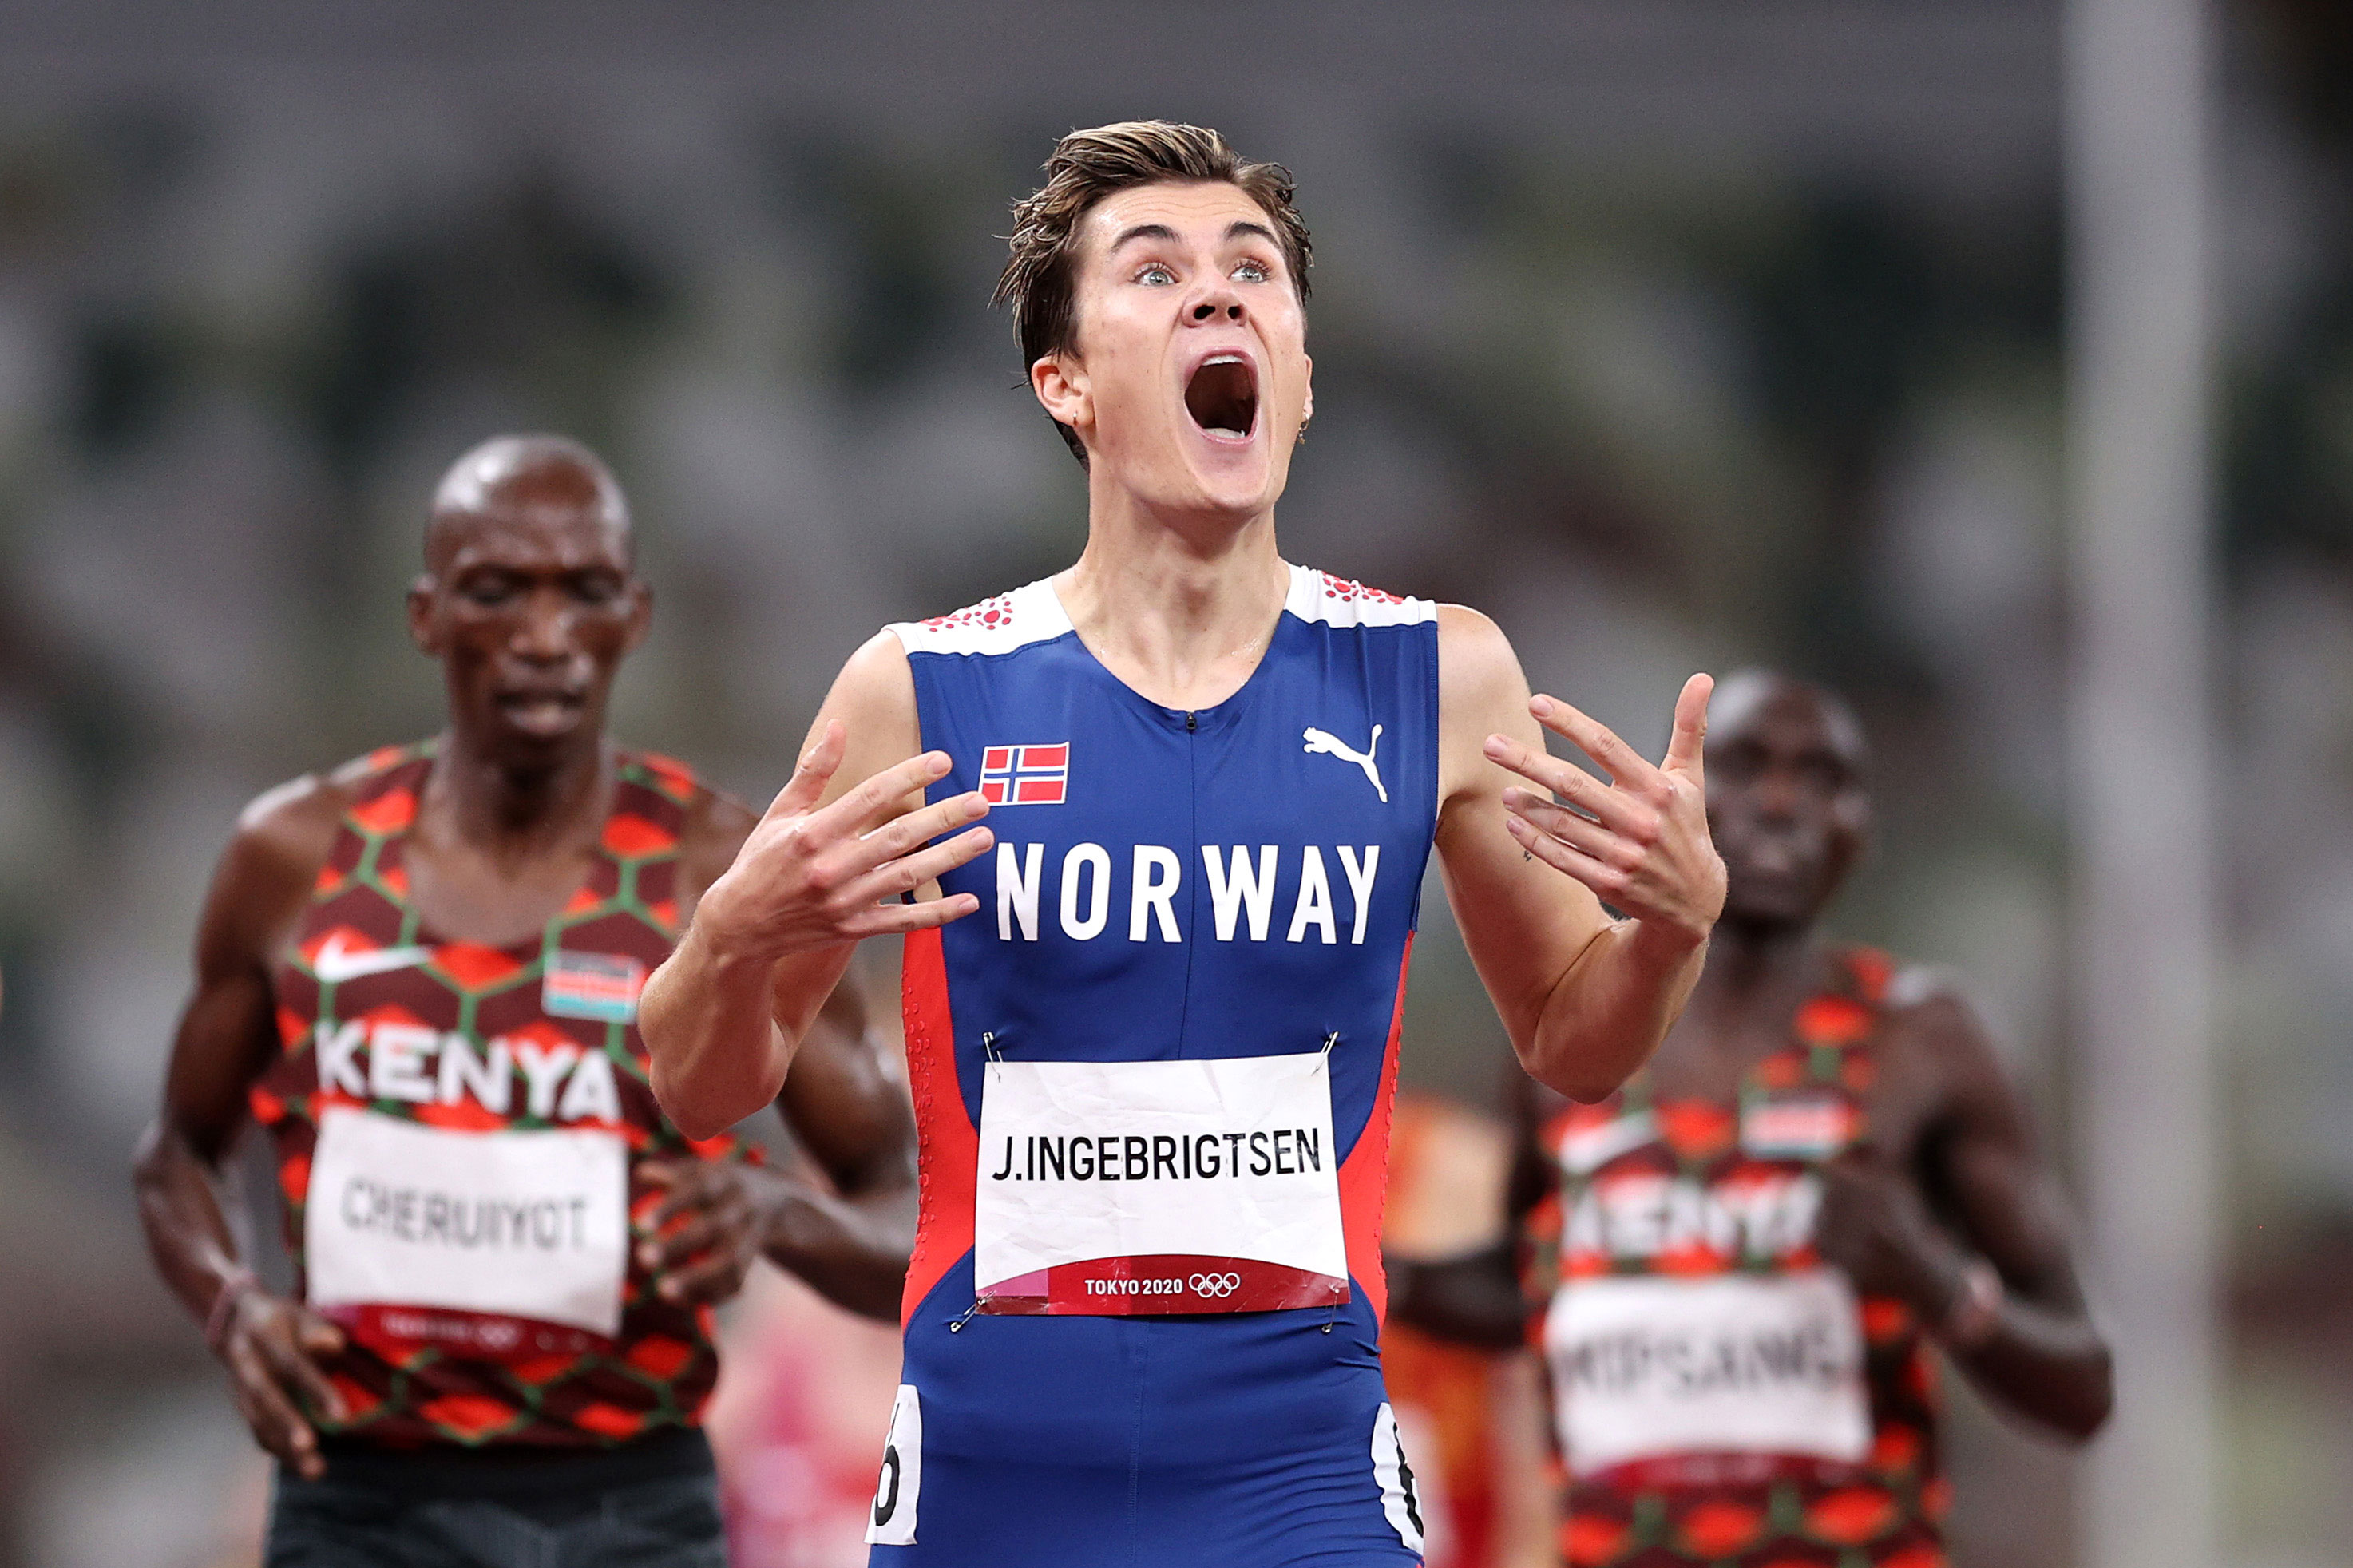 Jakob Ingebrigtsen of Norway reacts after winning gold in the 1500 meter final on Saturday.